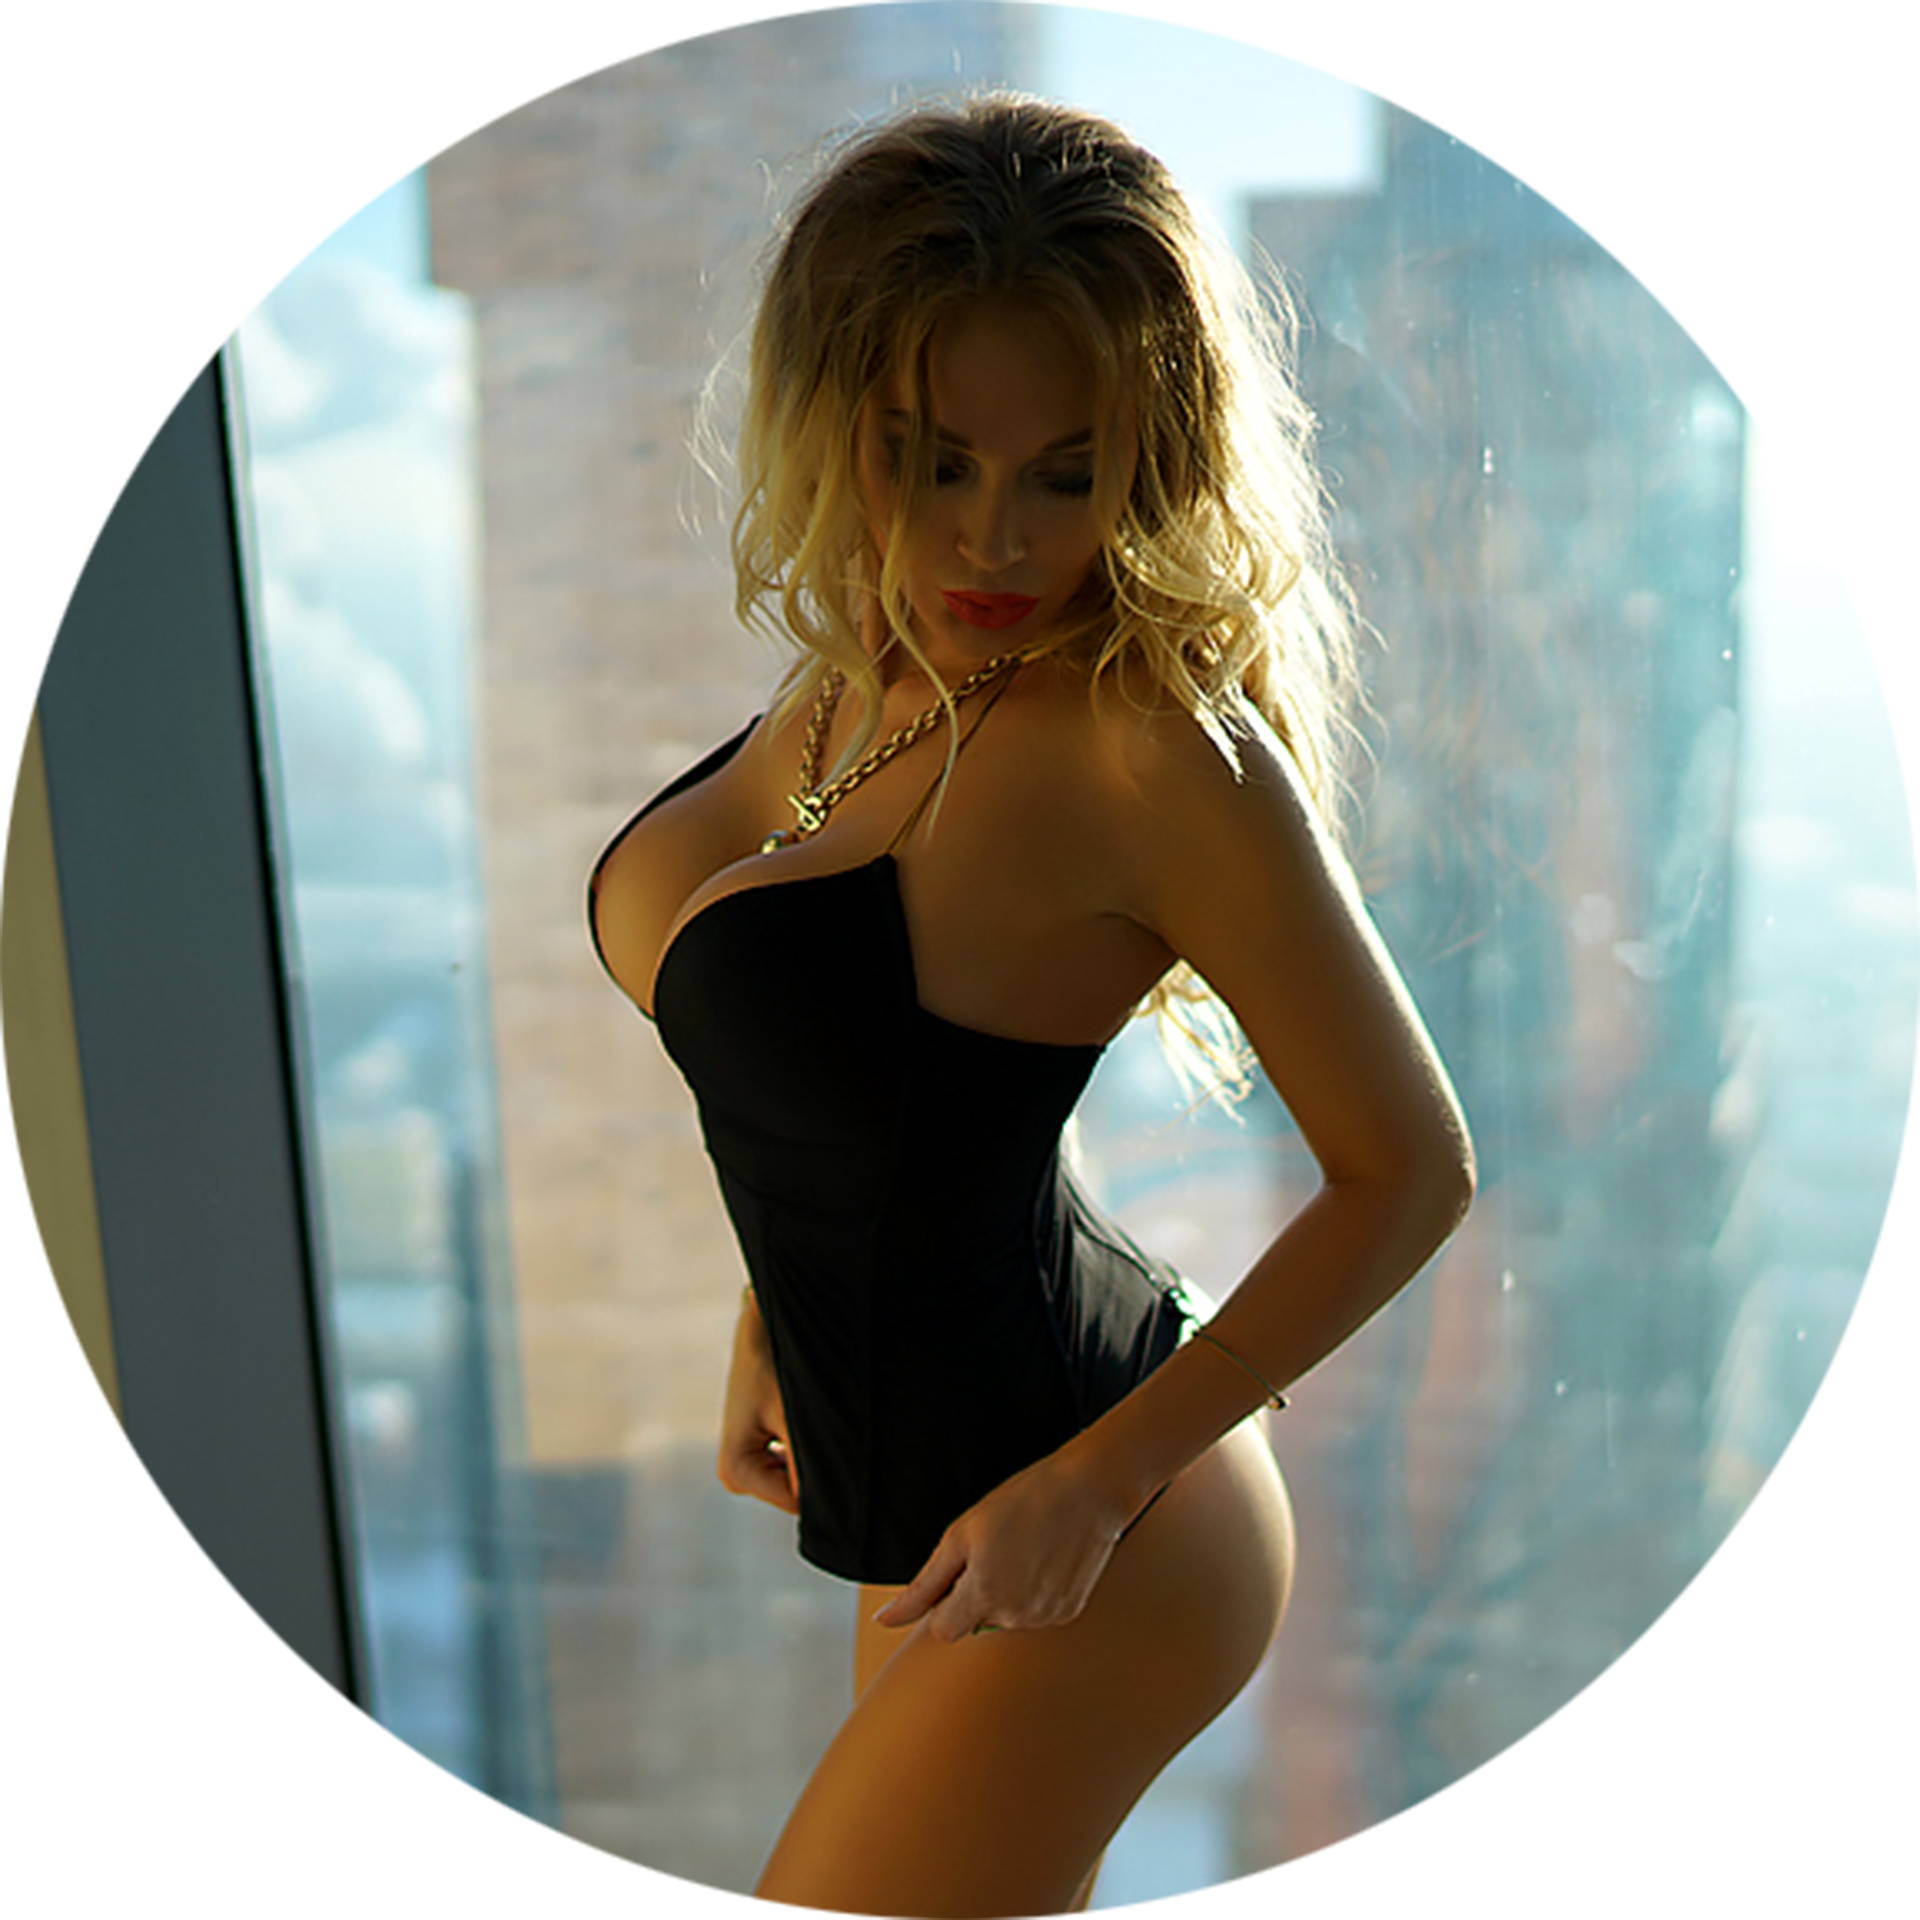 Karina, Los Angeles independent escort